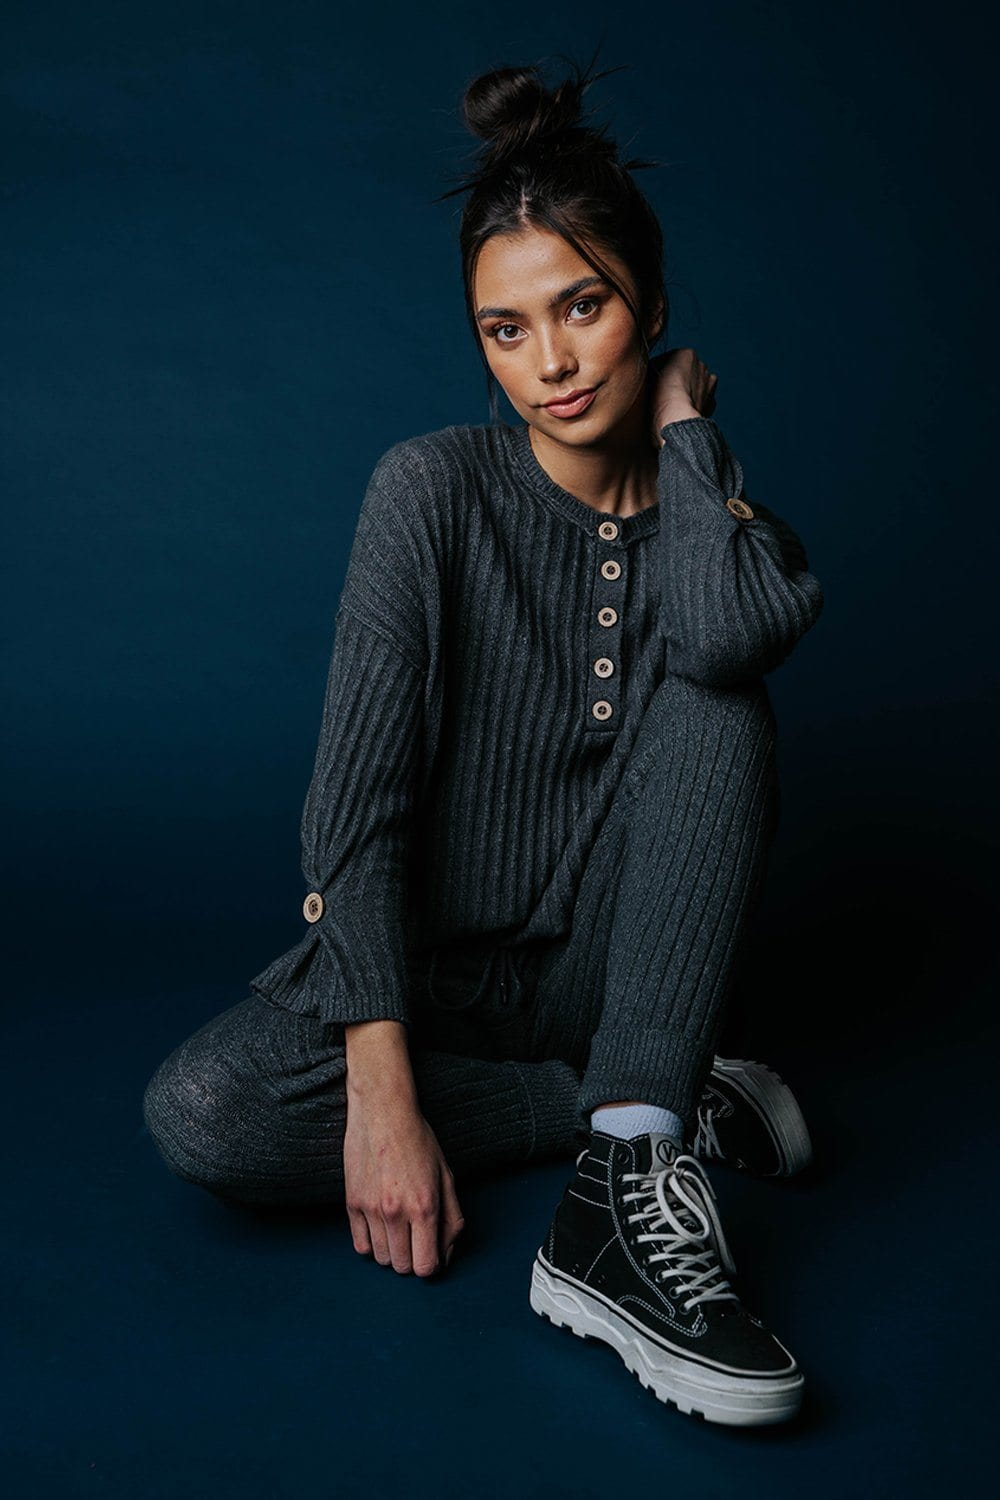 Free People Around the Clock Pullover in Charcoal Top Free People Clad and Cloth